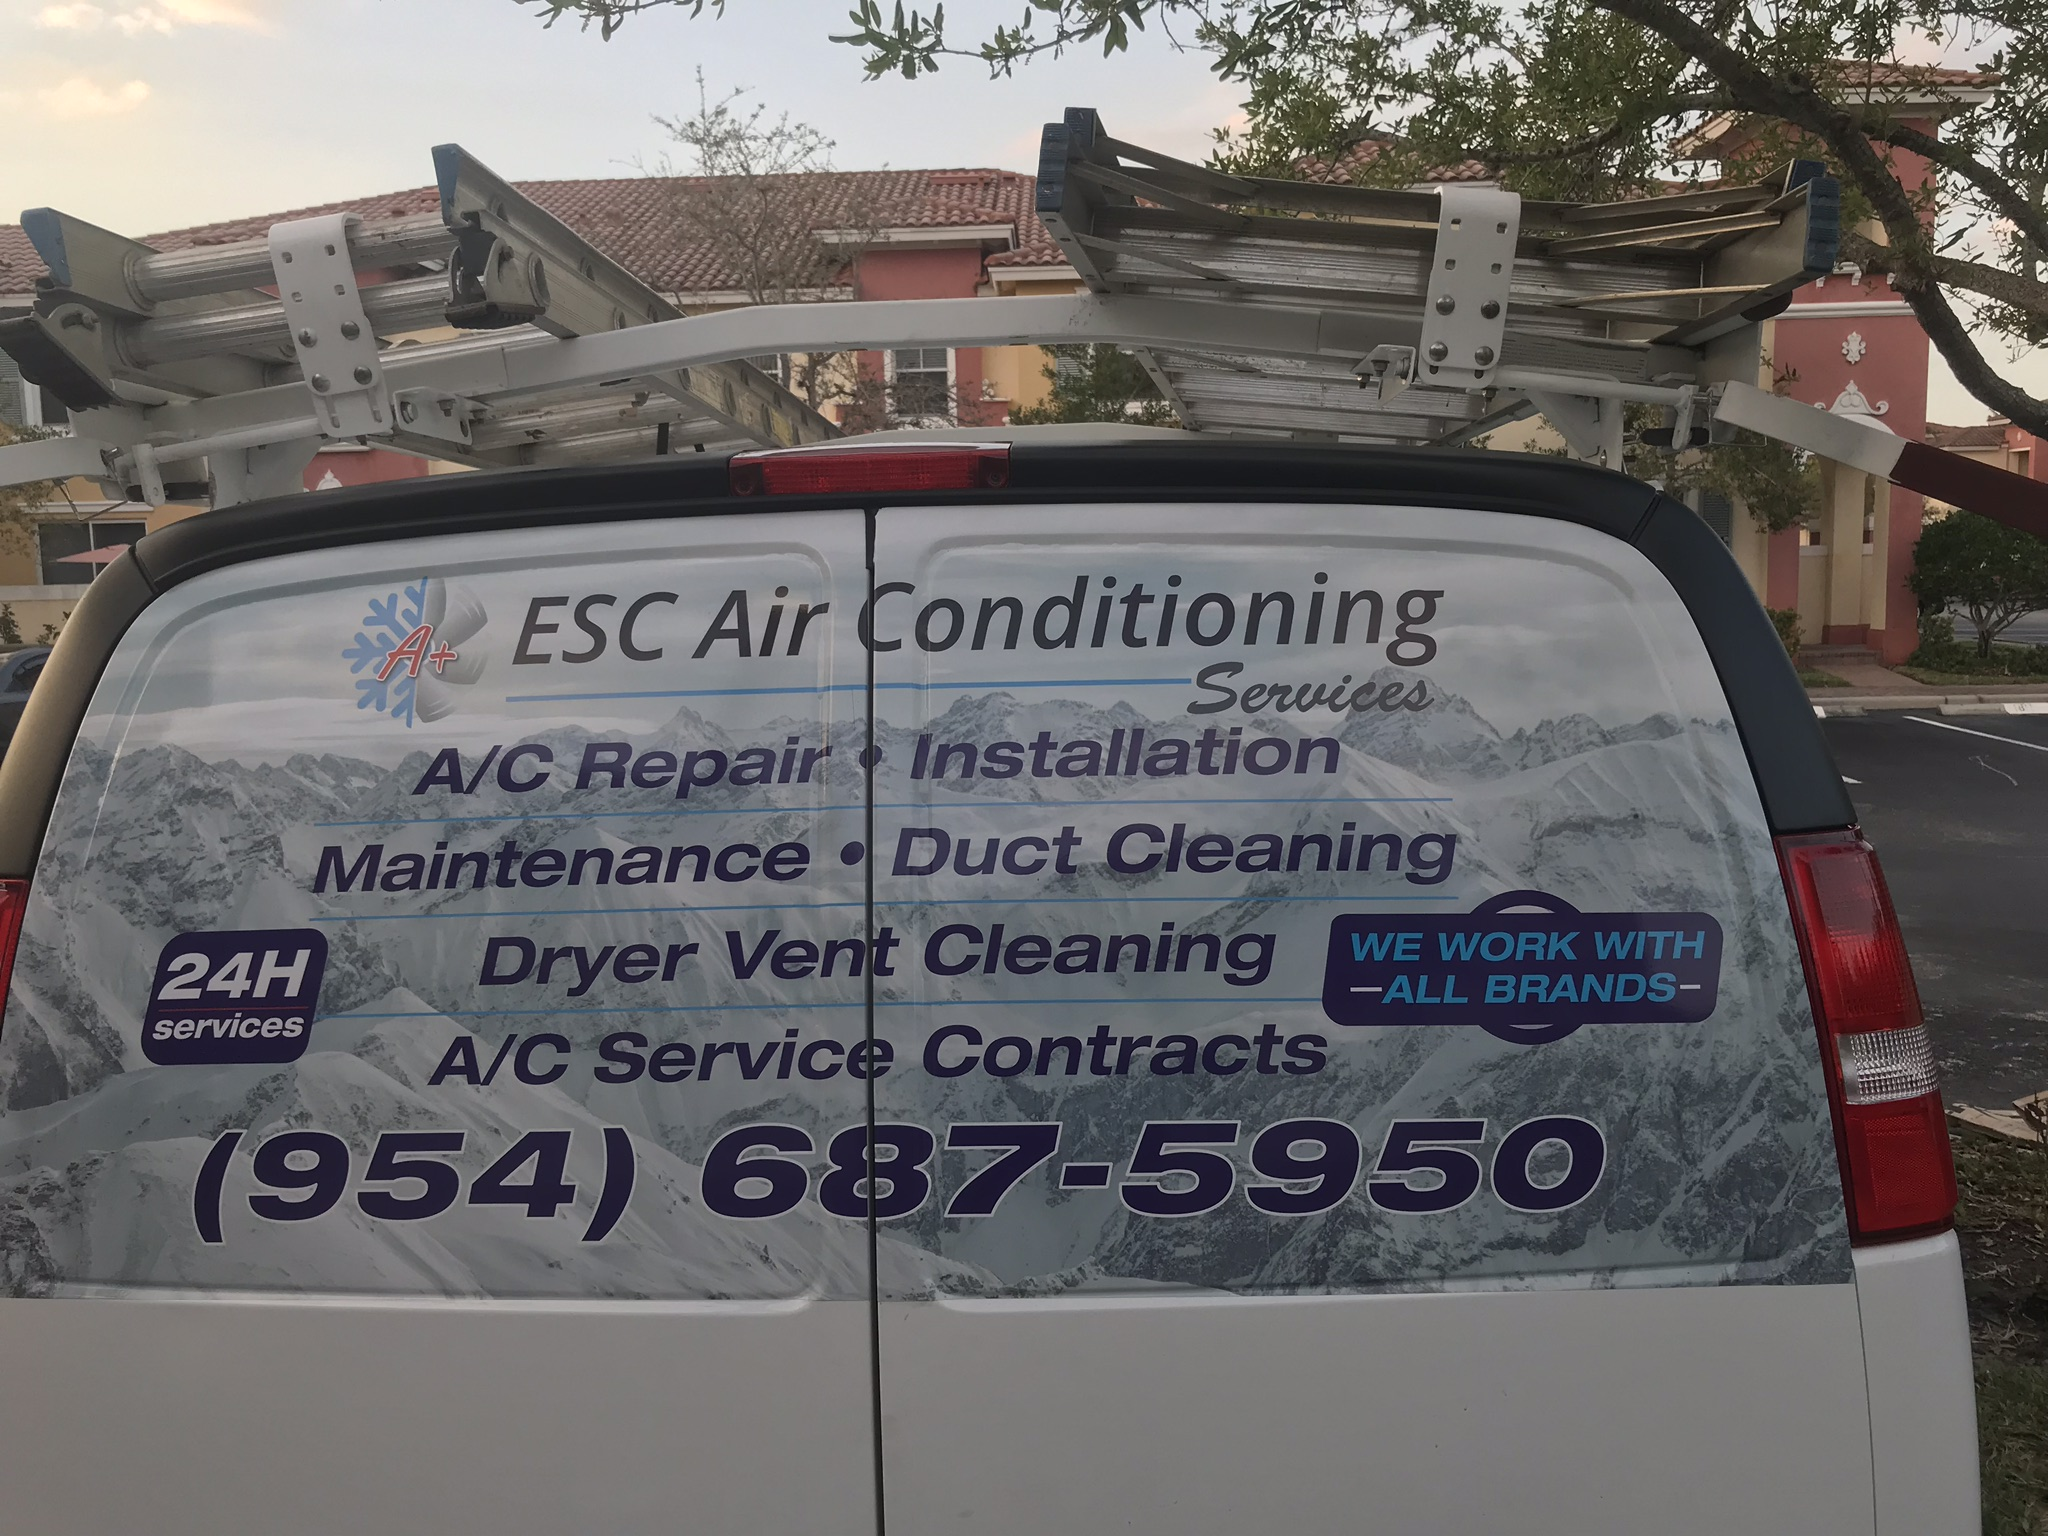 Air Conditioning Companies In Fort Lauderdale Fl